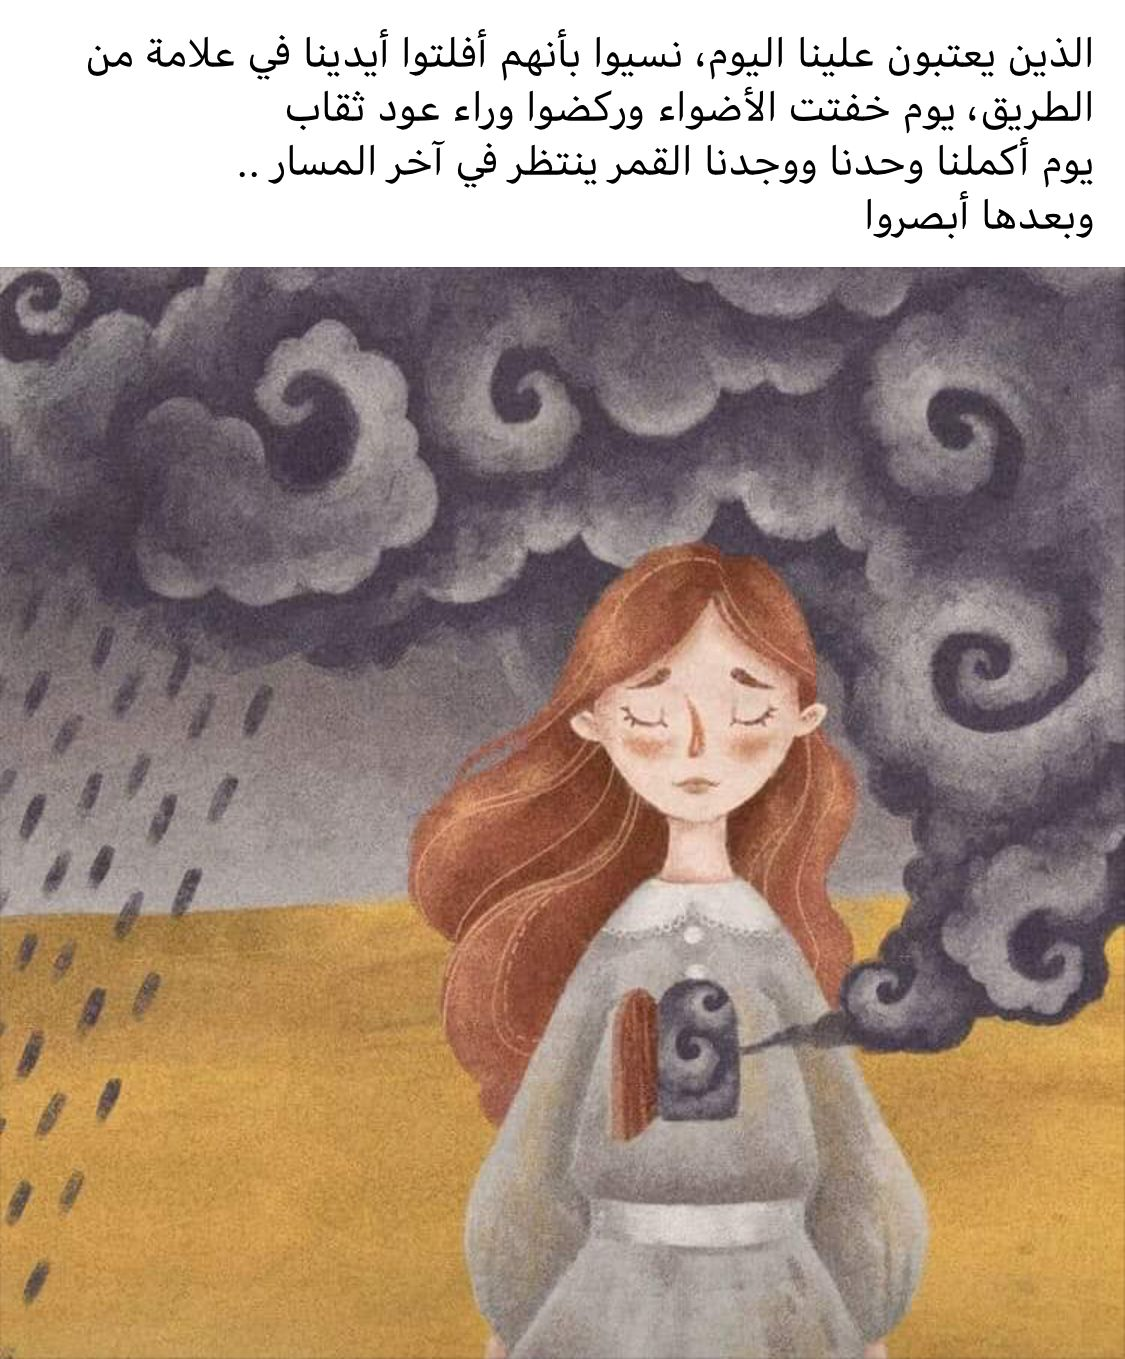 Pin By Mais Samhouri On كلام Mood Quotes Positive Quotes Disney Characters